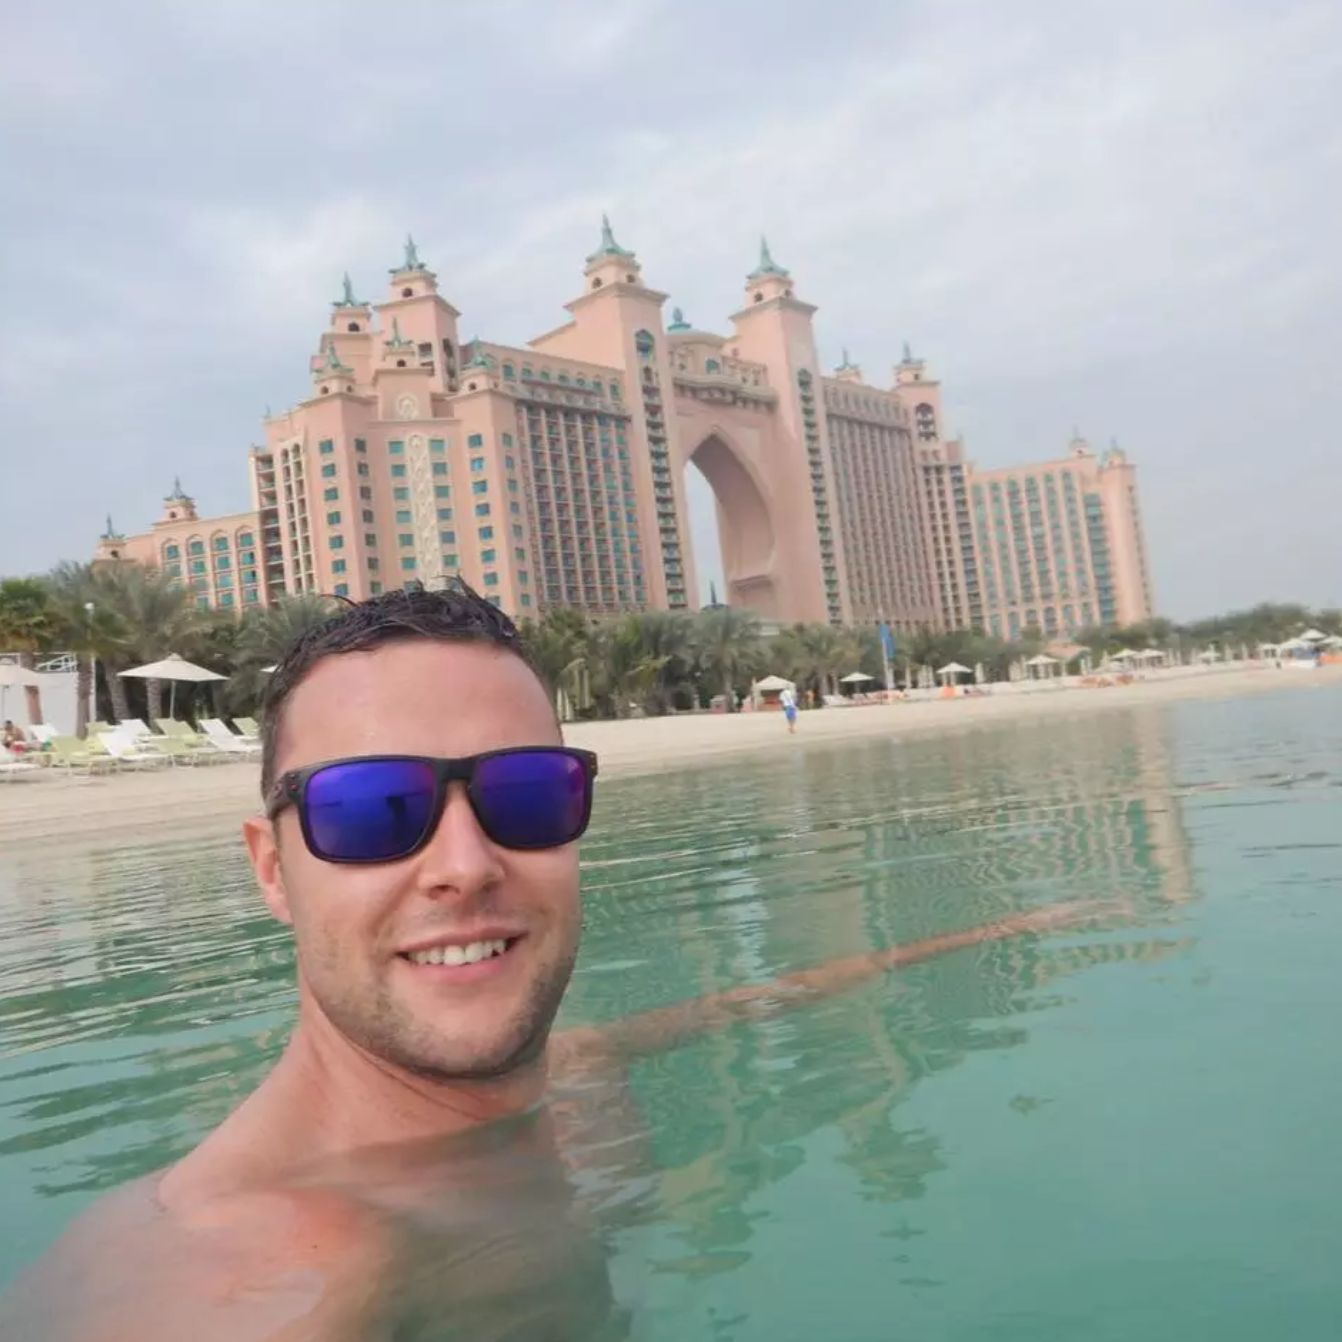 British Man Faces Three Years In Dubai Prison After 'Touching A Man's Hip In A